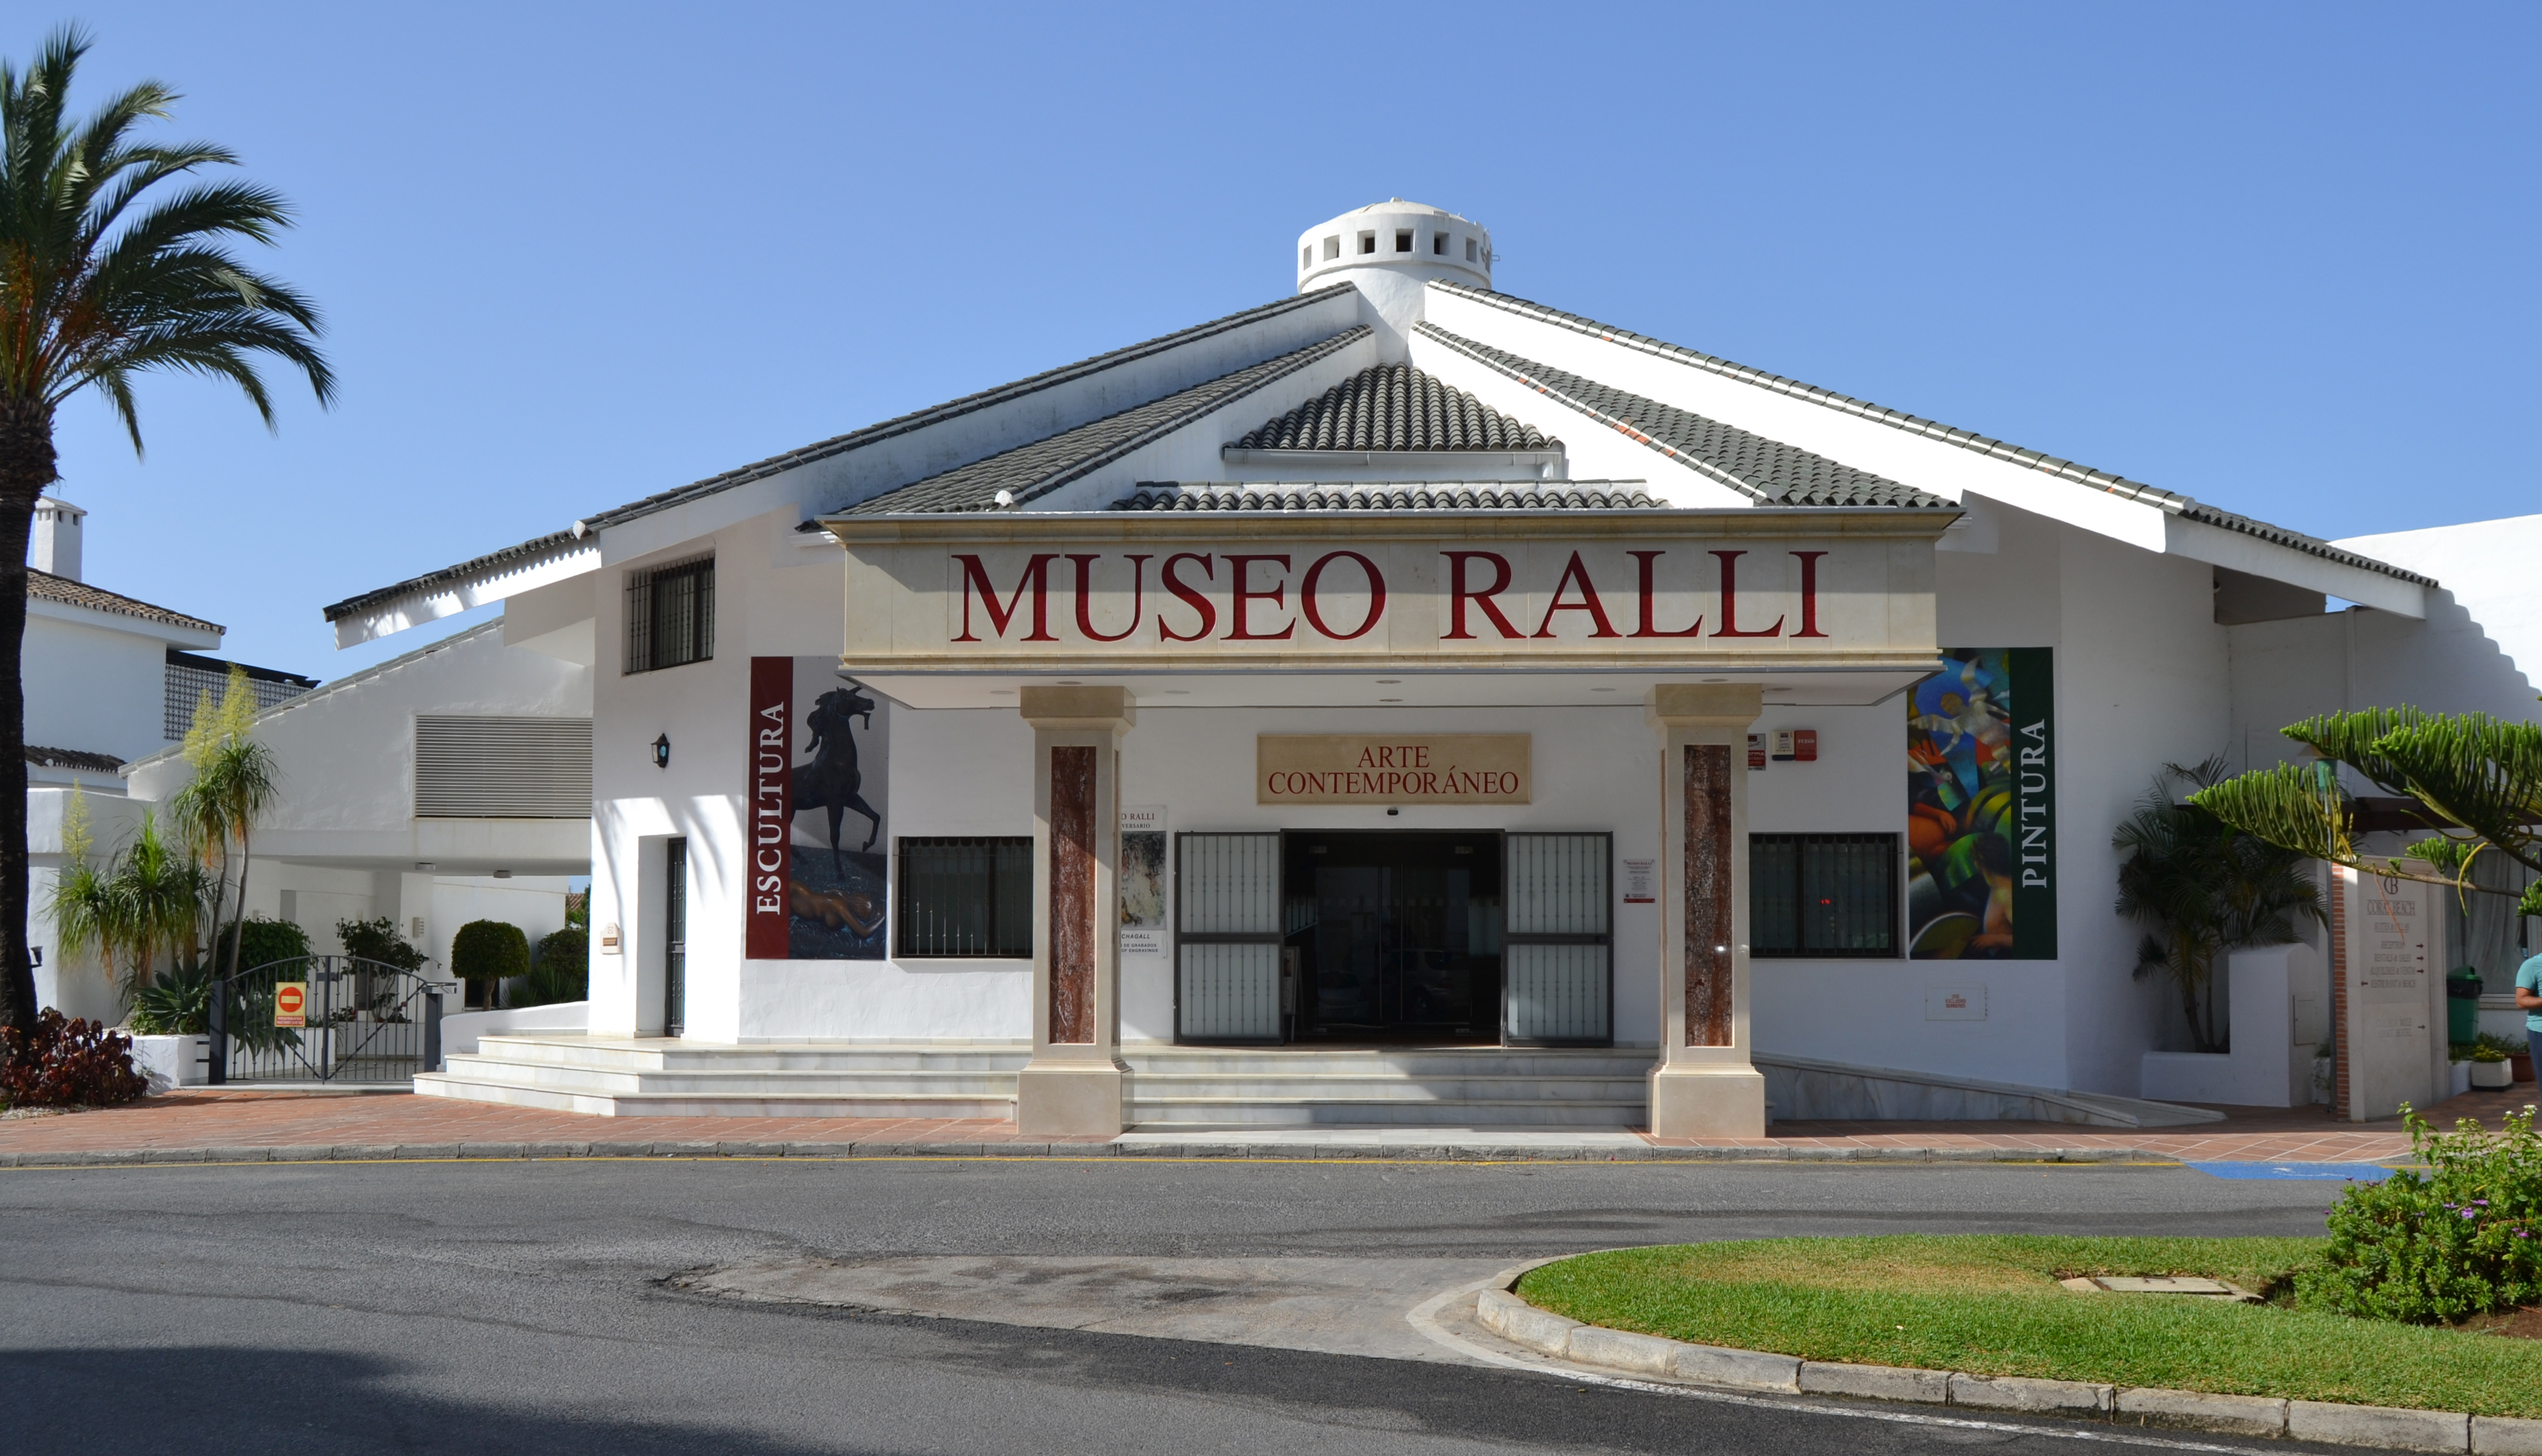 Image result for Museo Ralli marbella